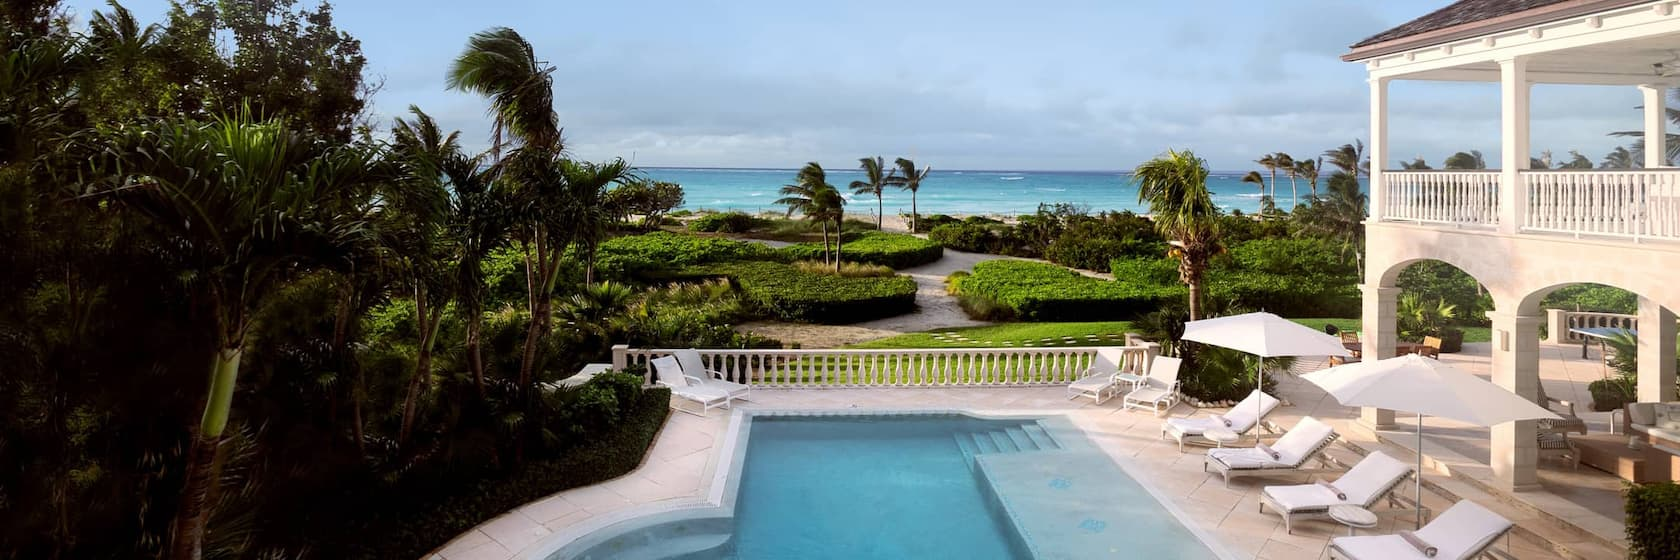 Luxury rentals in Turks and Caicos Islands